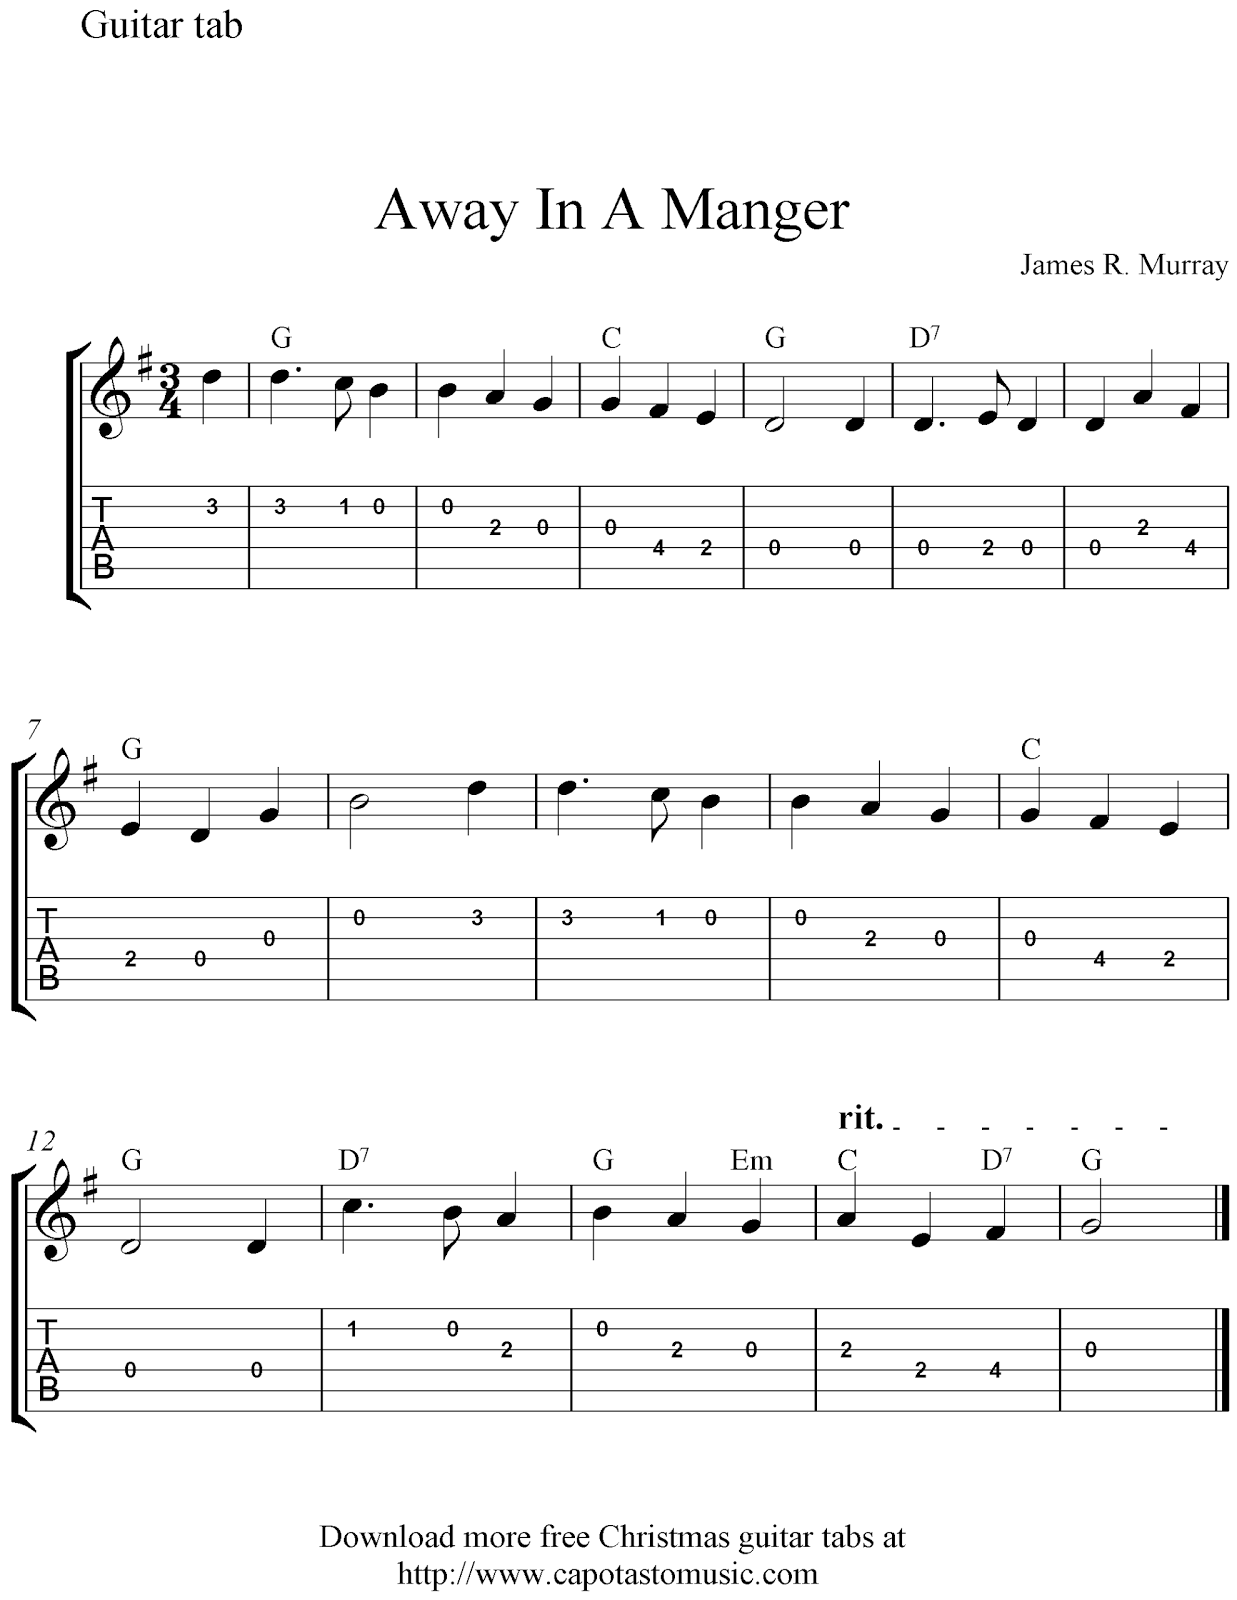 On This Site You Can Download Free Printable Sheet Music Scores And